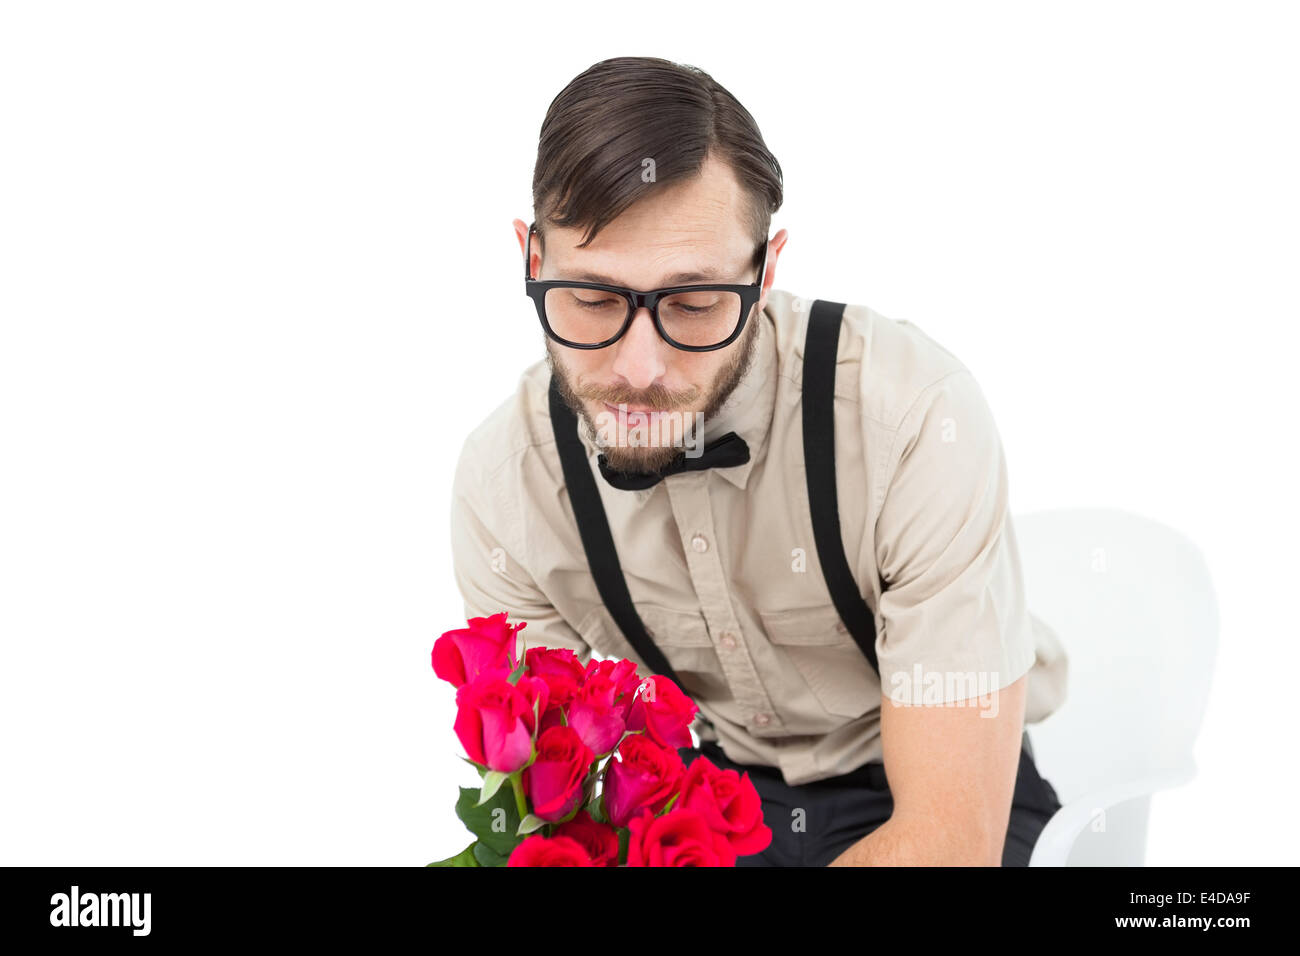 Geeky heartbroken hipster holding roses - Stock Image